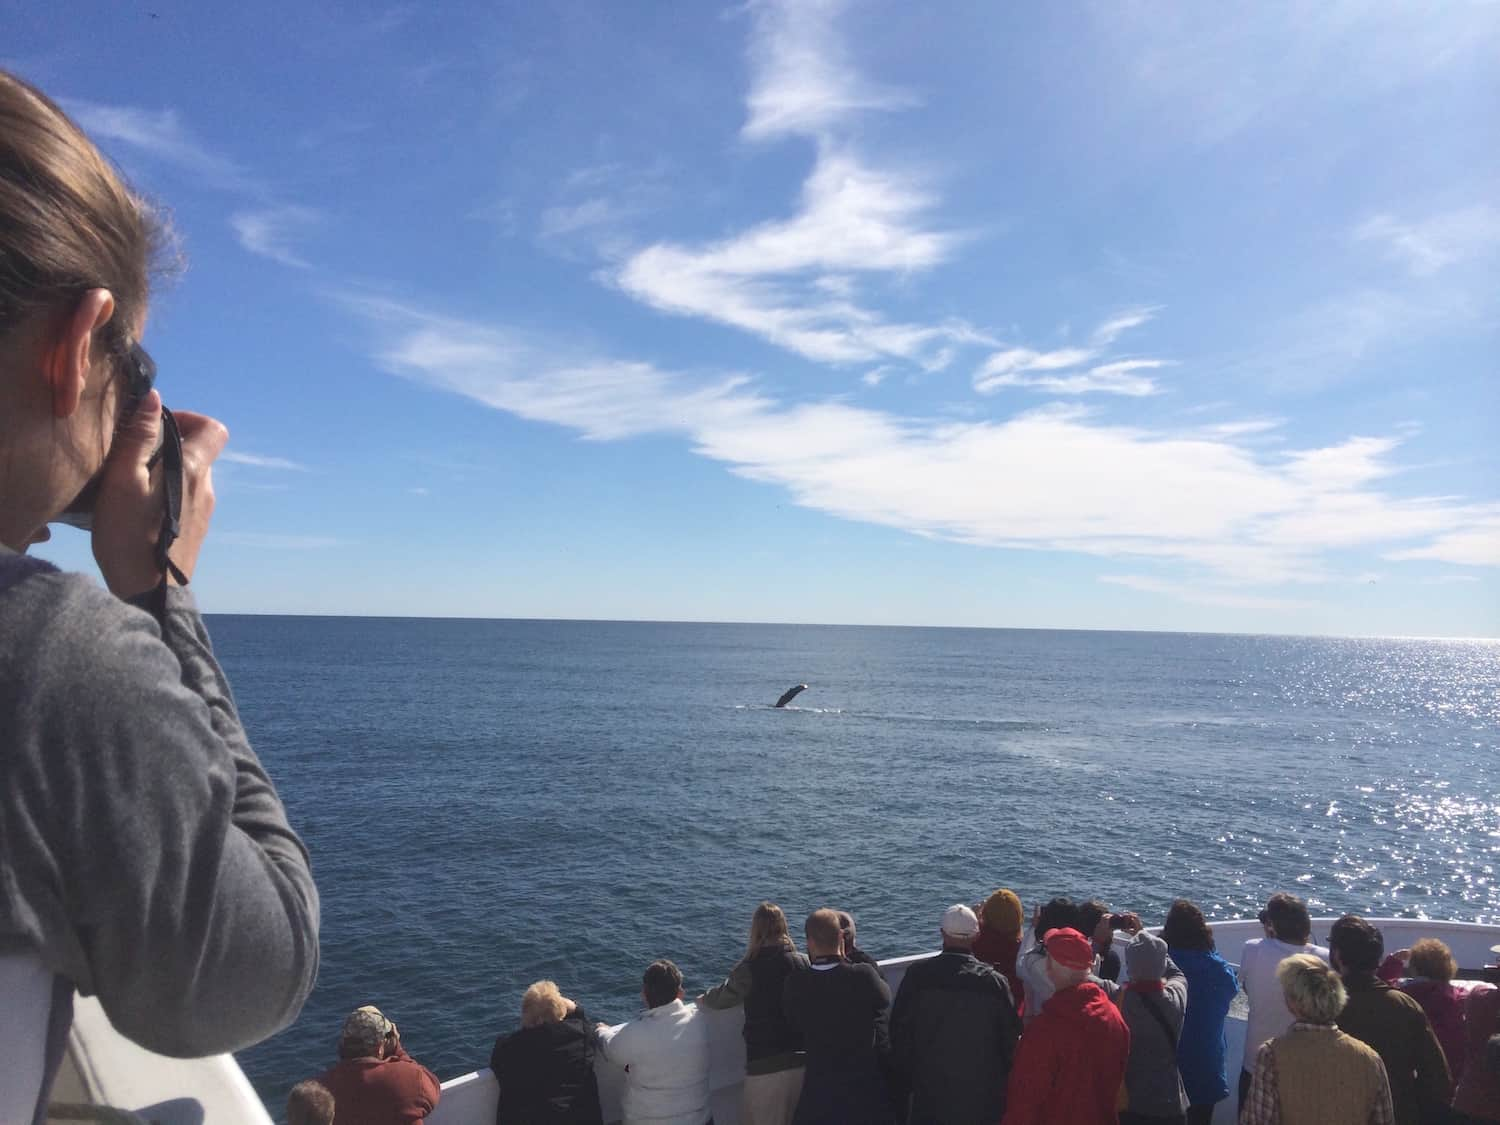 Major Marine Tours - Whale Watching